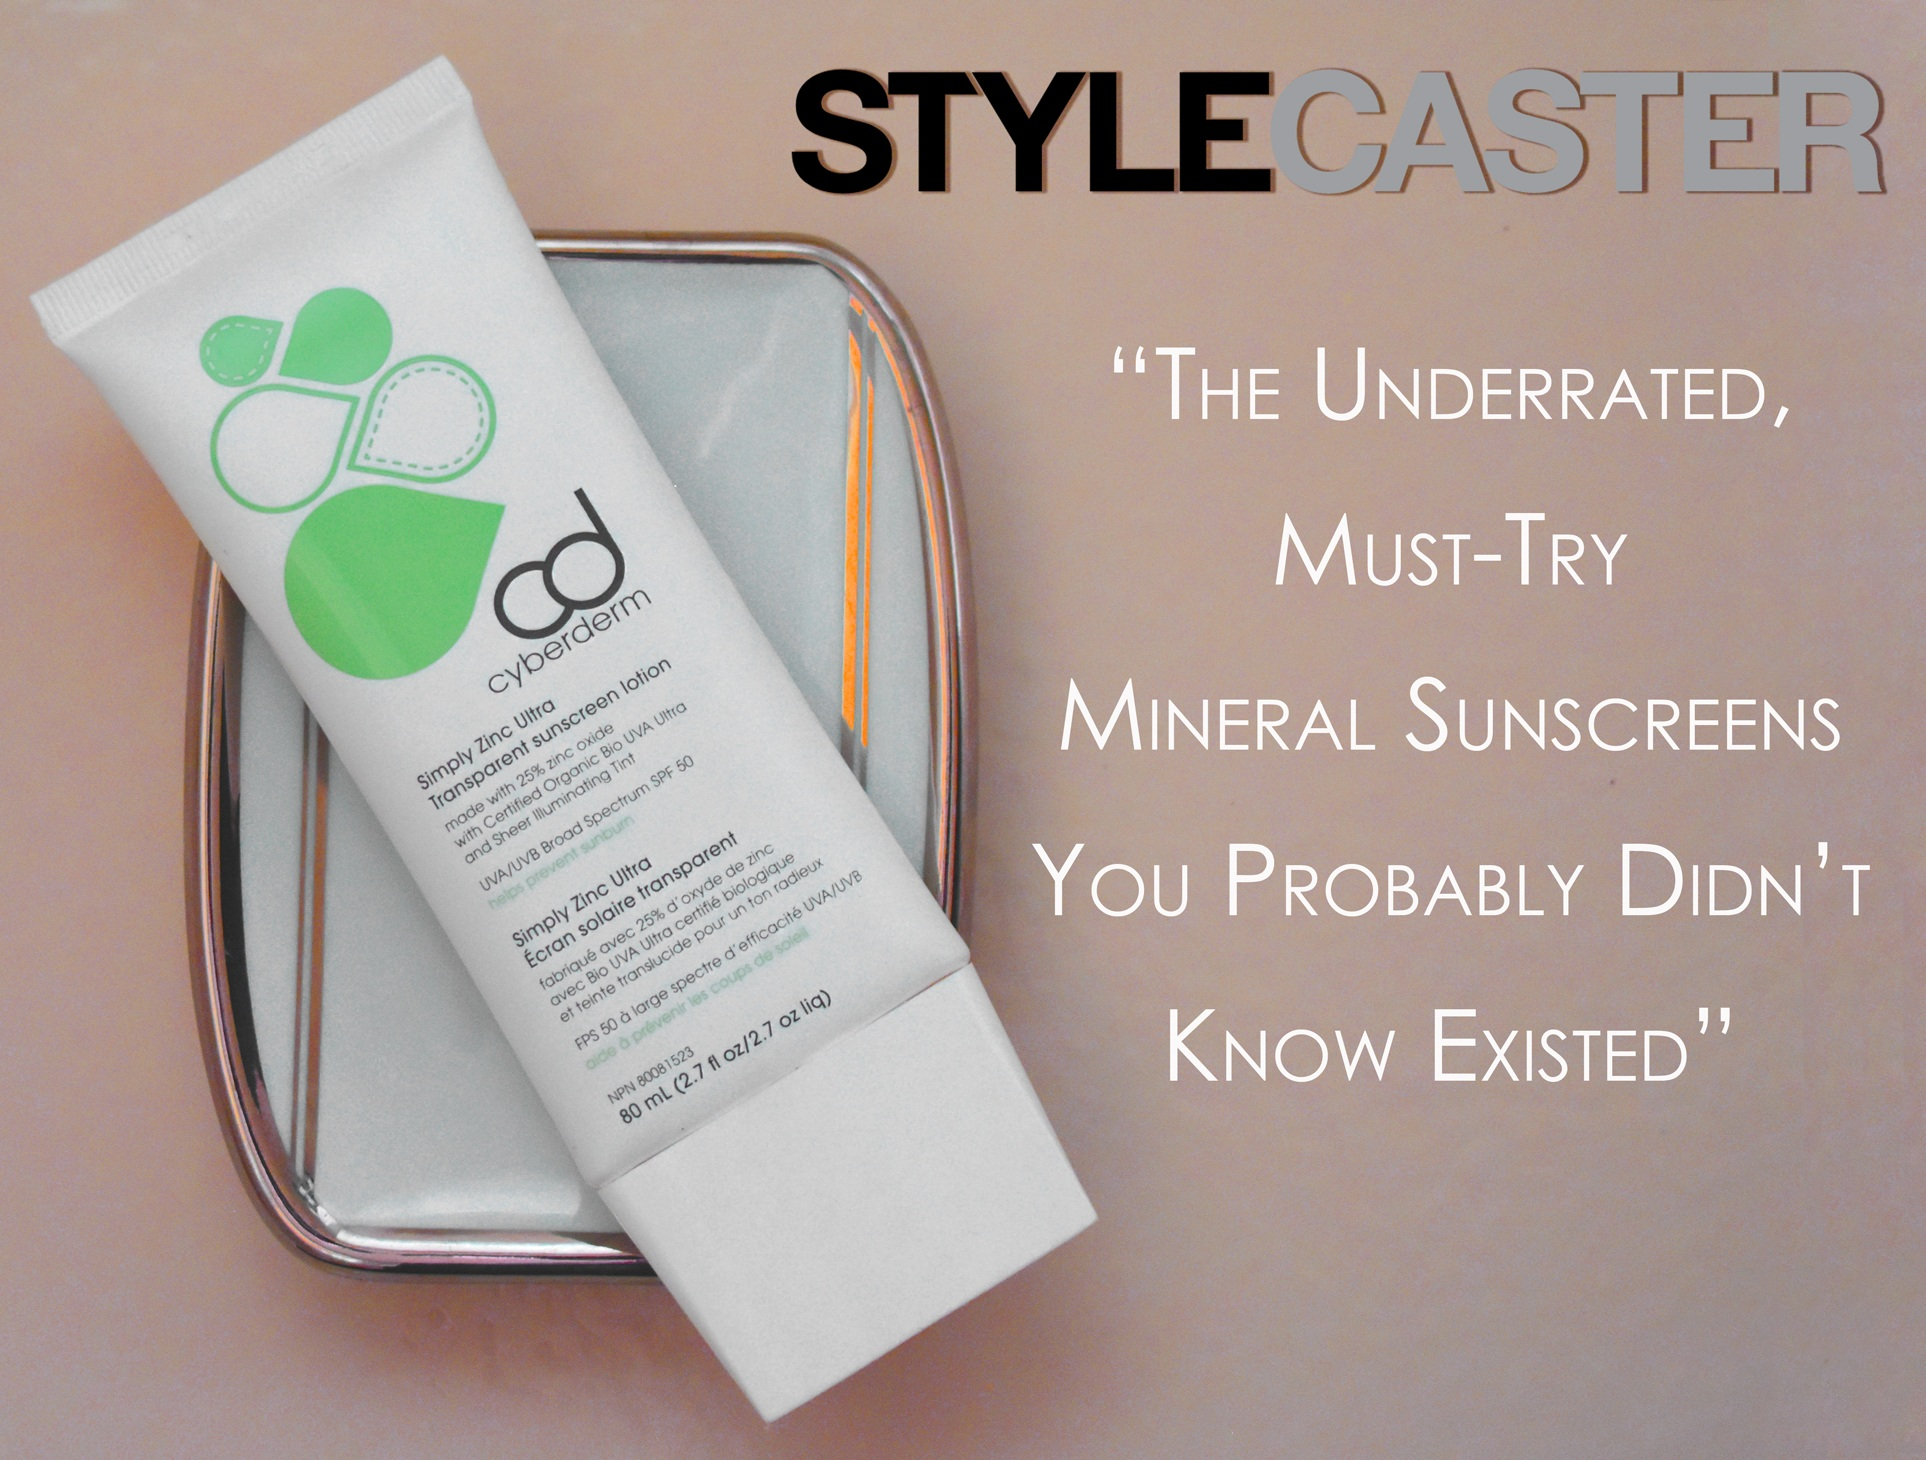 StyleCaster Lists The Most Underrated Mineral Sunscreens That You Must Try. - The team at StyleCaster has included our cult-classic CyberDERM Simply Zinc Ultra SPF on this list of must-try mineral sunscreens for it's ability to protect while being light weight and sheer.